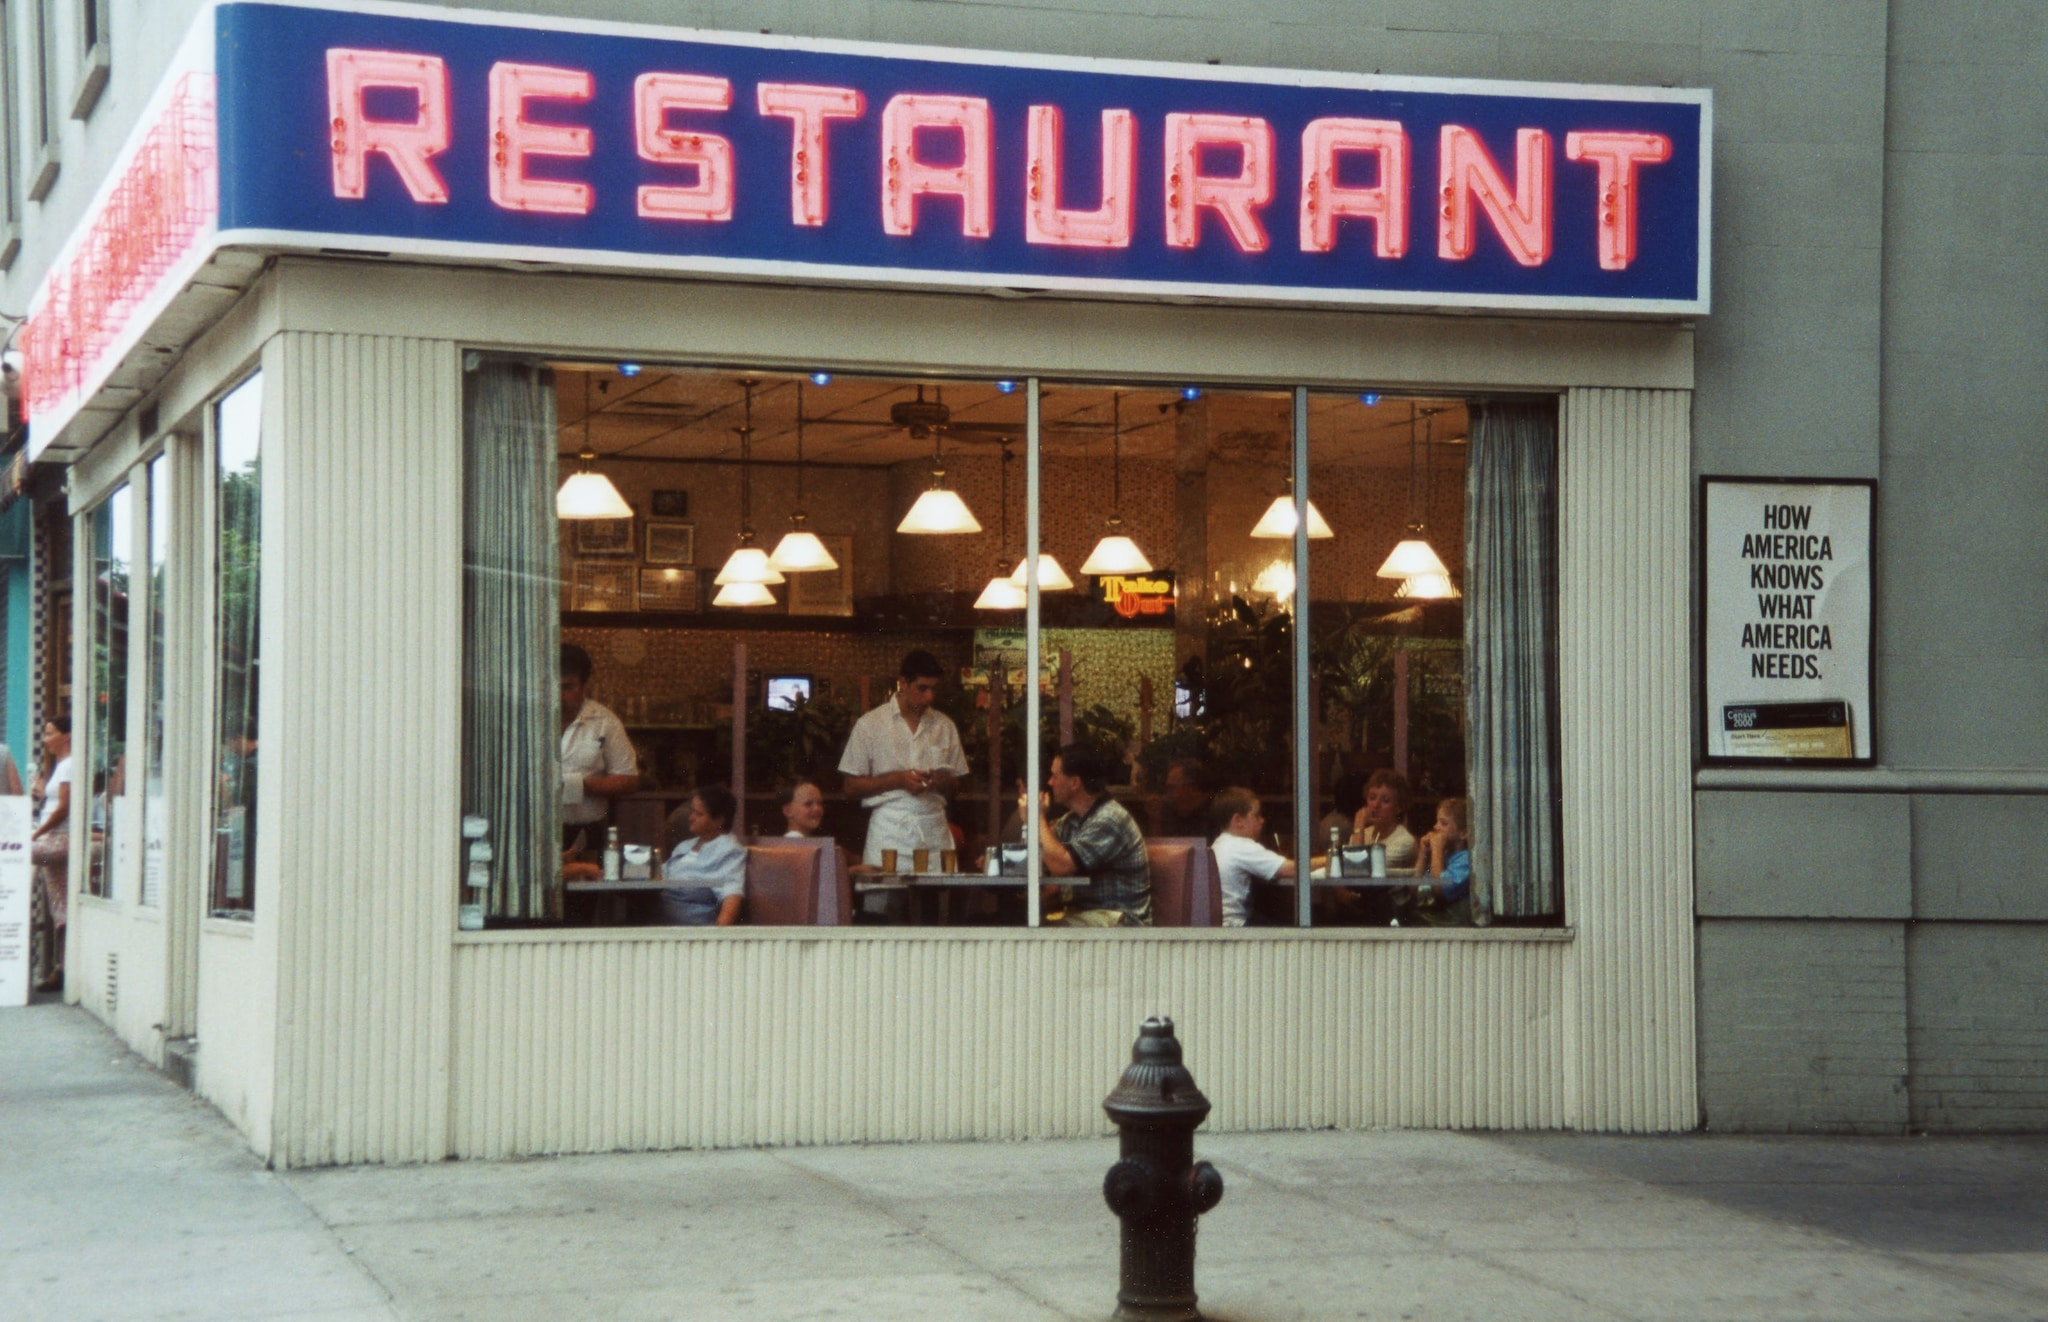 Tom's Restaurant — 'Seinfeld'. Jerry Seinfeld and his friends George Costanza, Elaine Benes, and Cosmo Kramer spent most of their time in either Jerry's apartment or at the 'coffee shop', which in real life is Tom's Restaurant in Manhattan, New York.